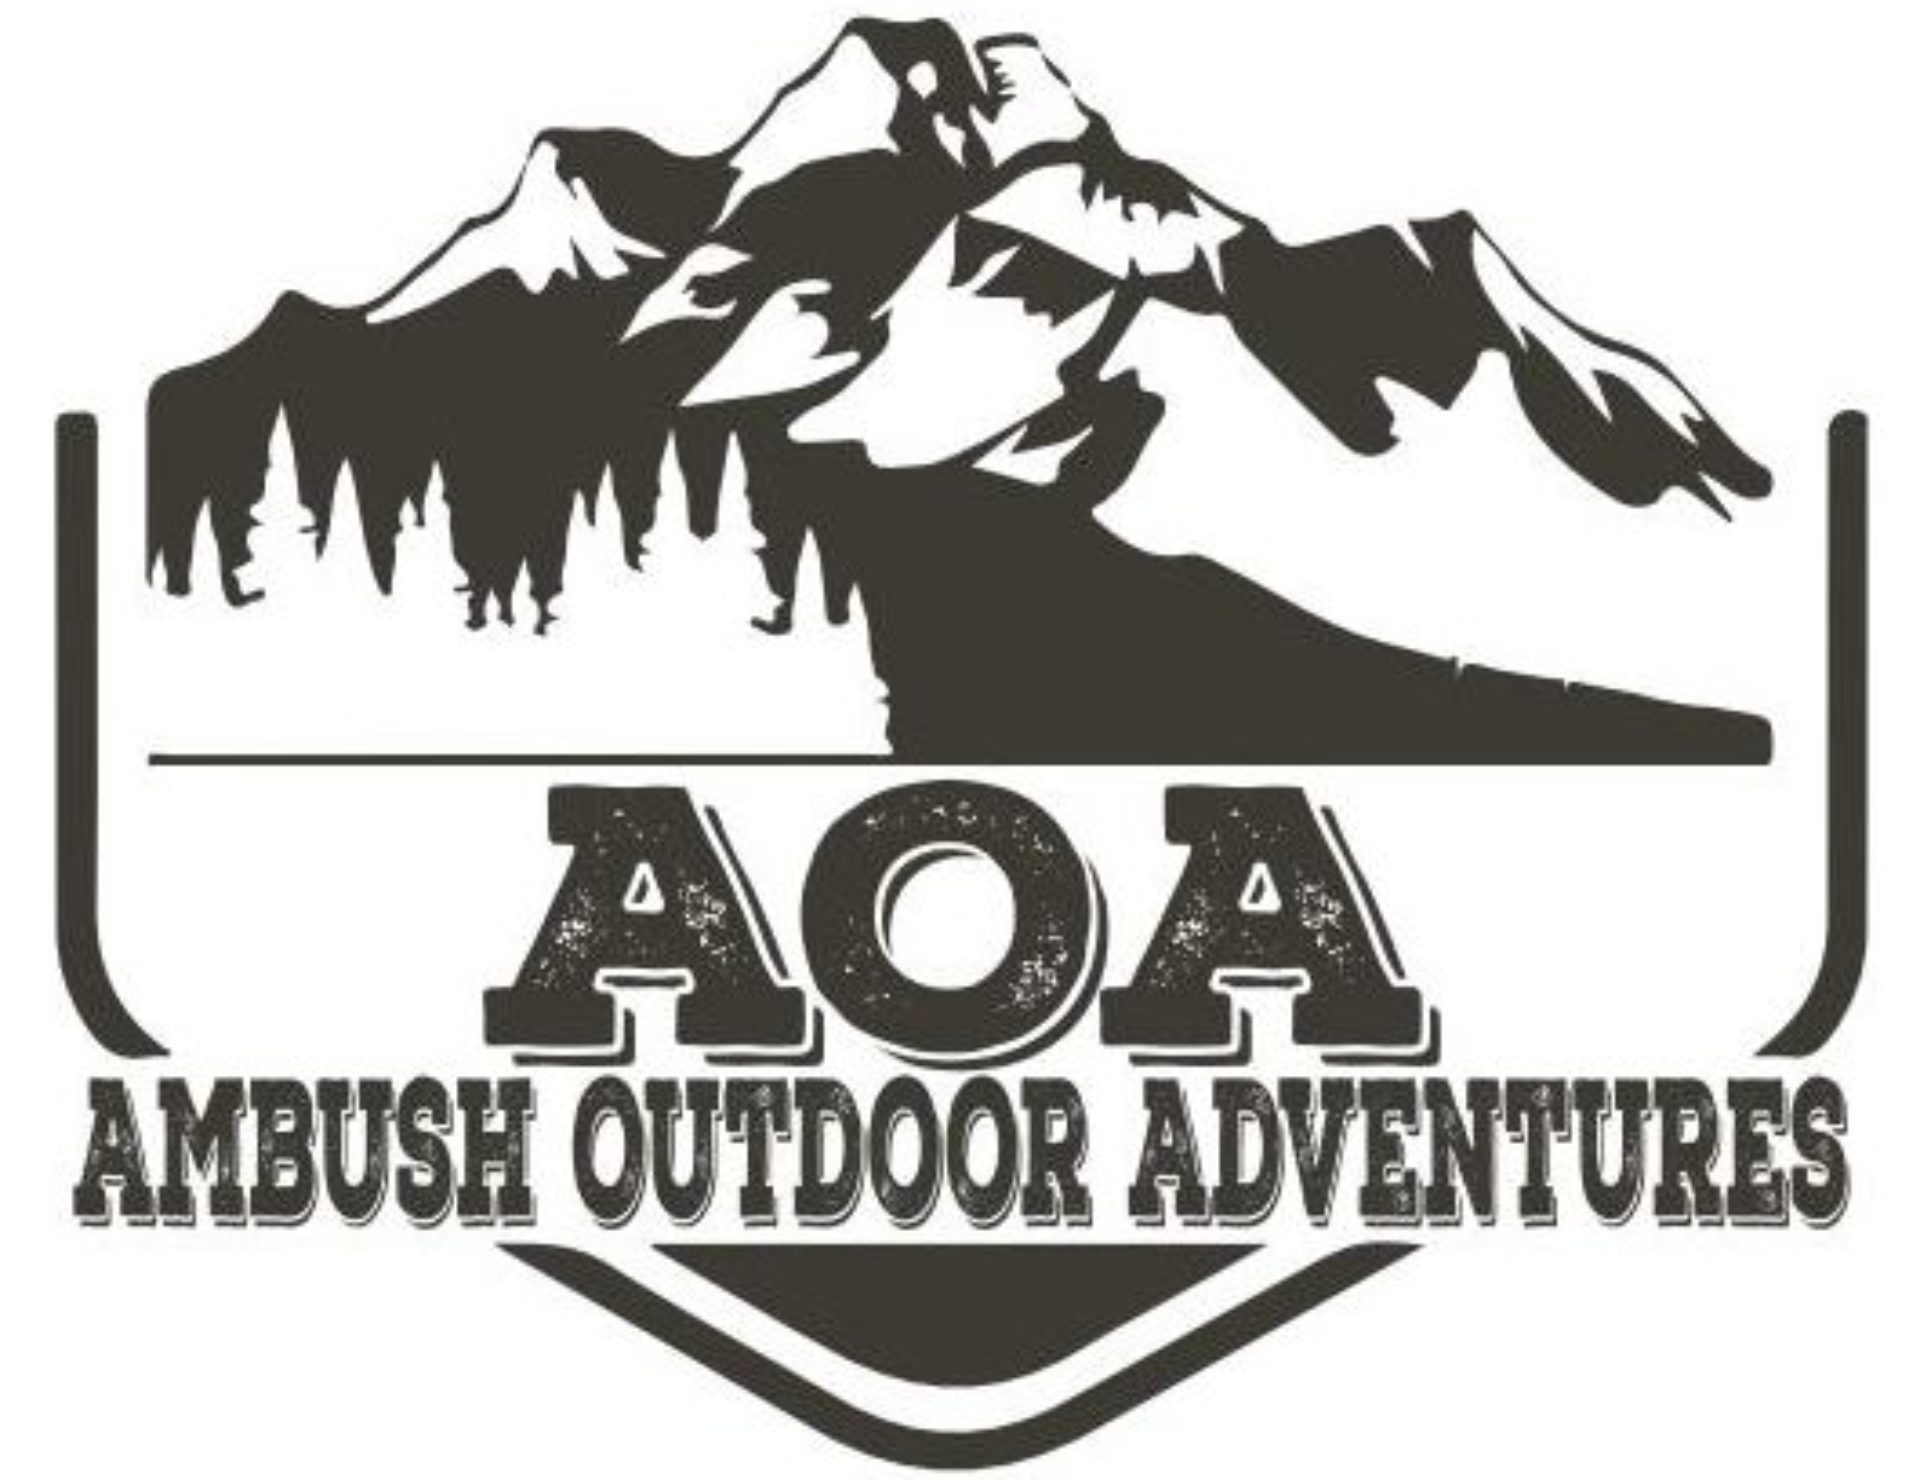 Ambush Outdoor Adventures